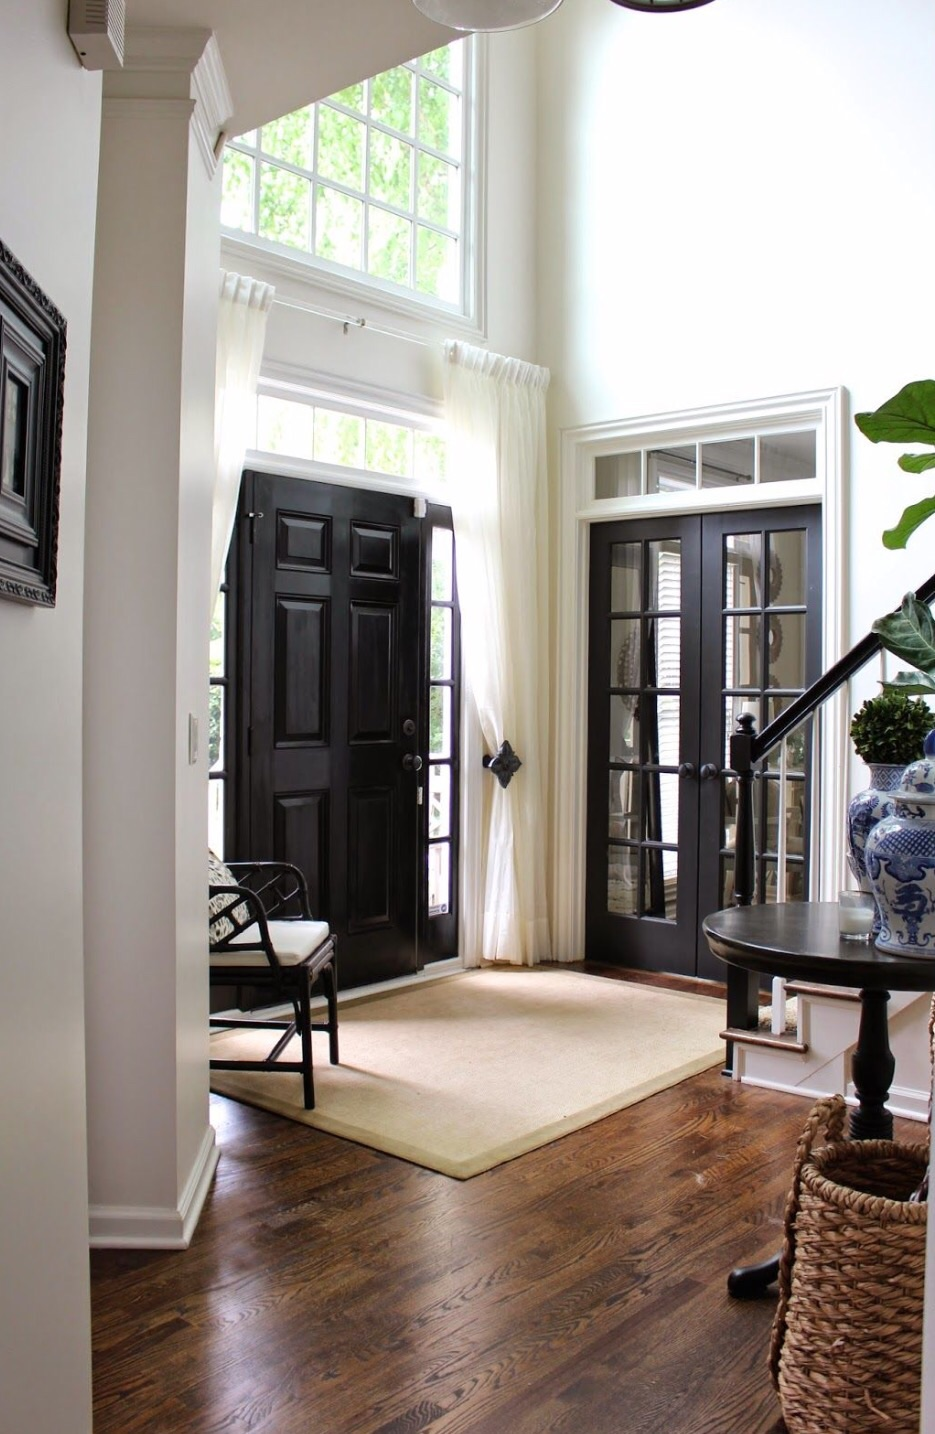 Door drama 5 reasons to have black interior doors - Sophisticated black interior doors ...